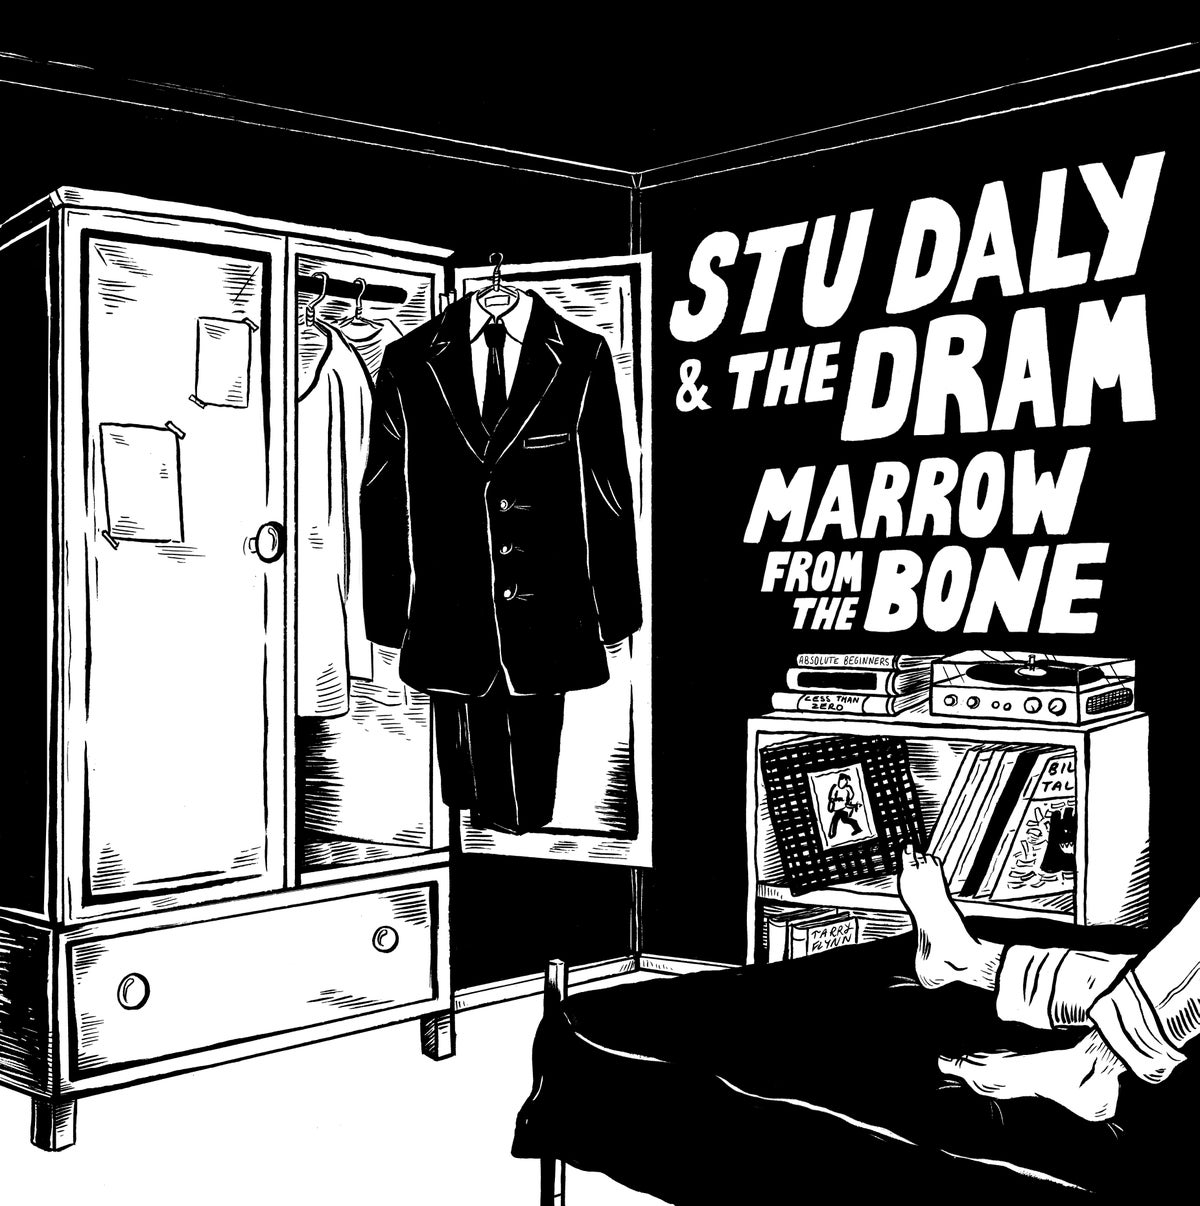 Image of Stu Daly & The Dram - Marrow from the Bone 7""